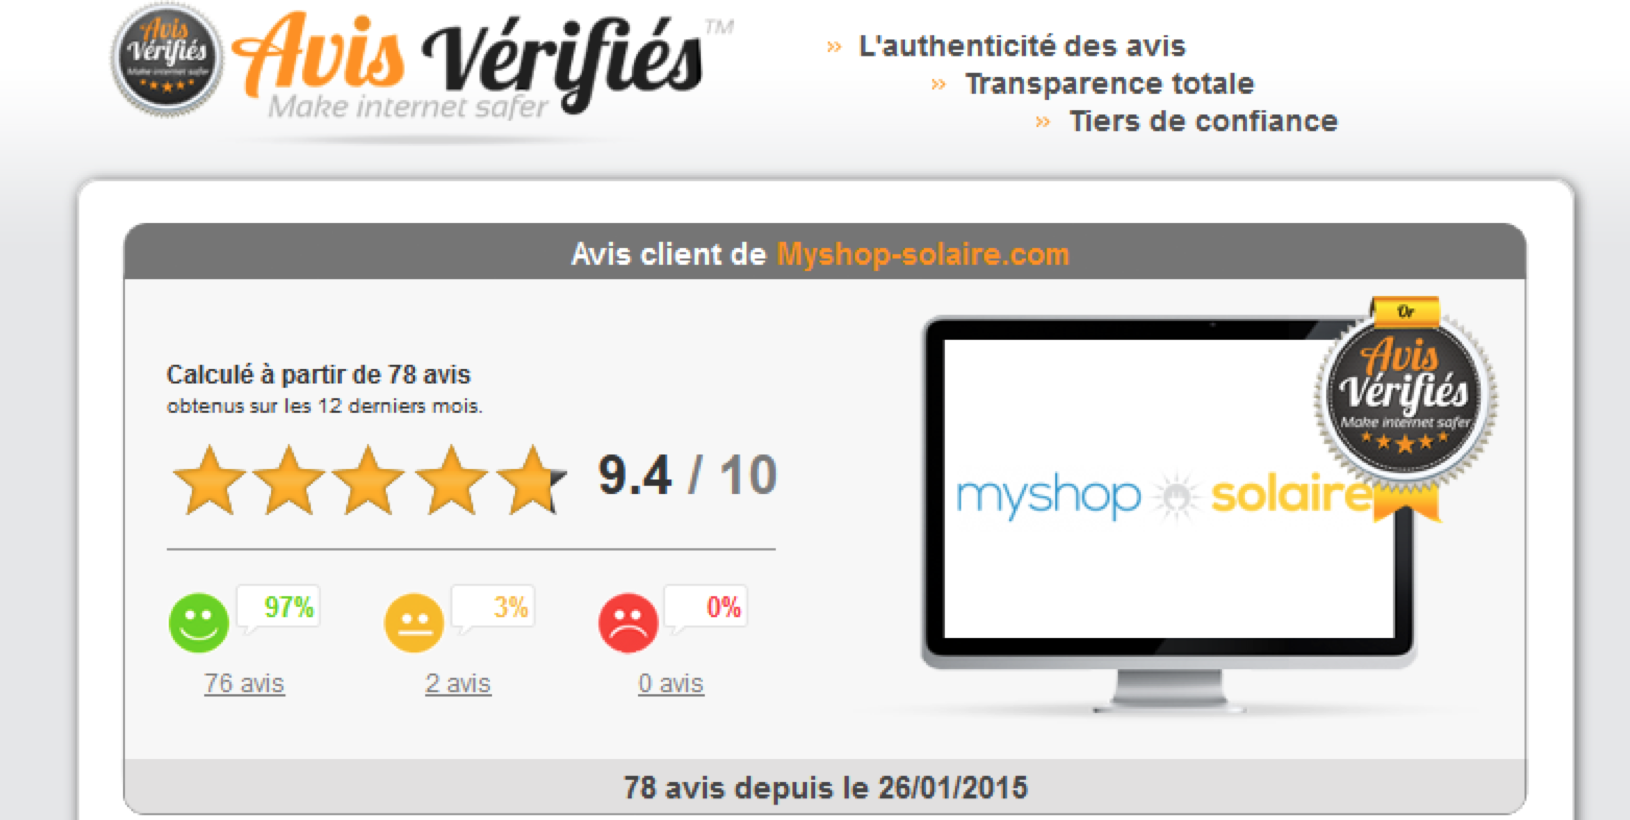 Screenshoot-Myshop-Solaire-avis-verifies